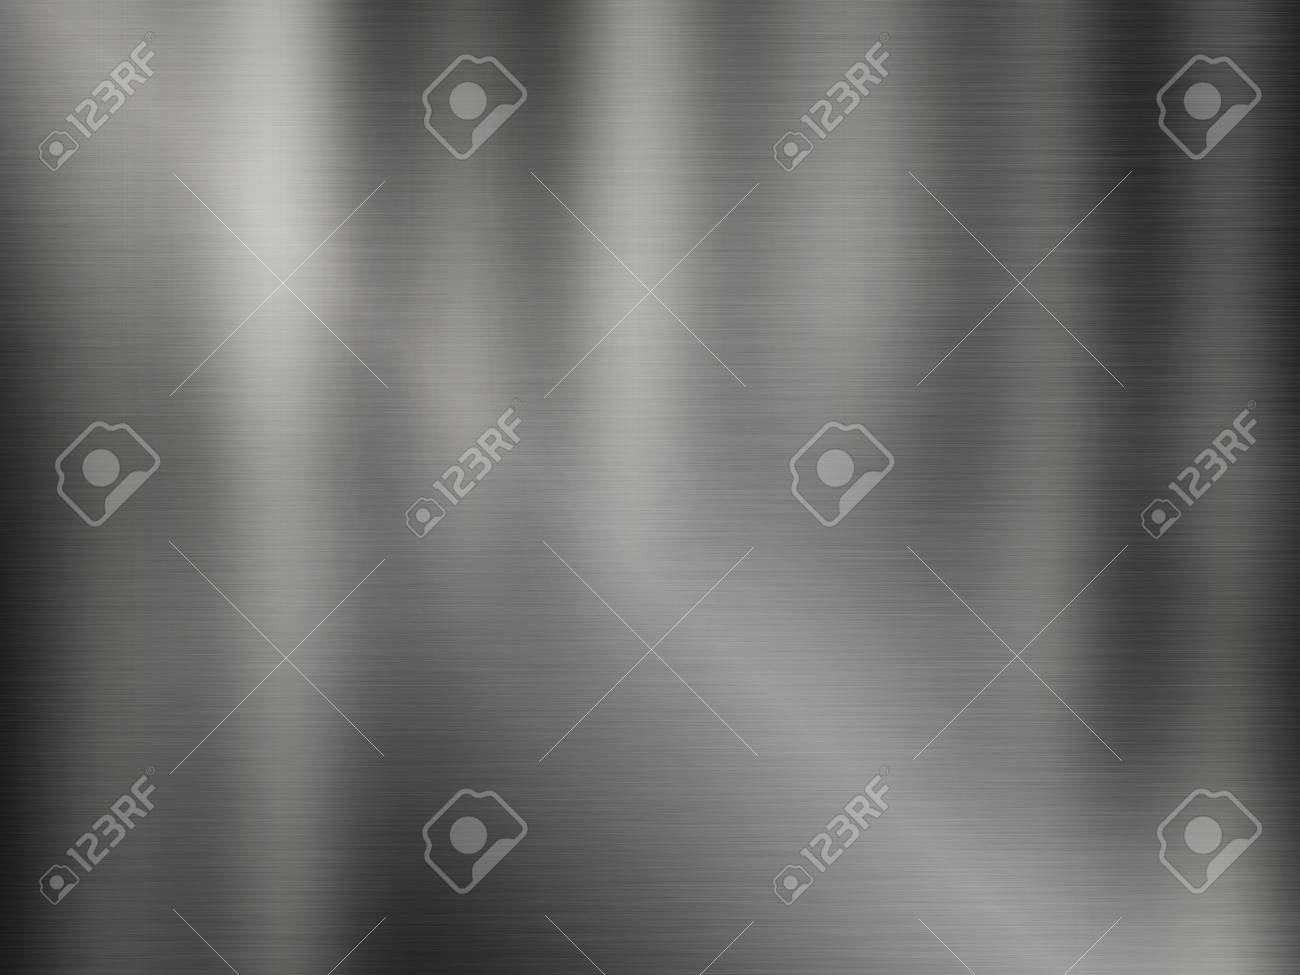 Stainless steel texture or metal texture background Banque d'images - 75076760